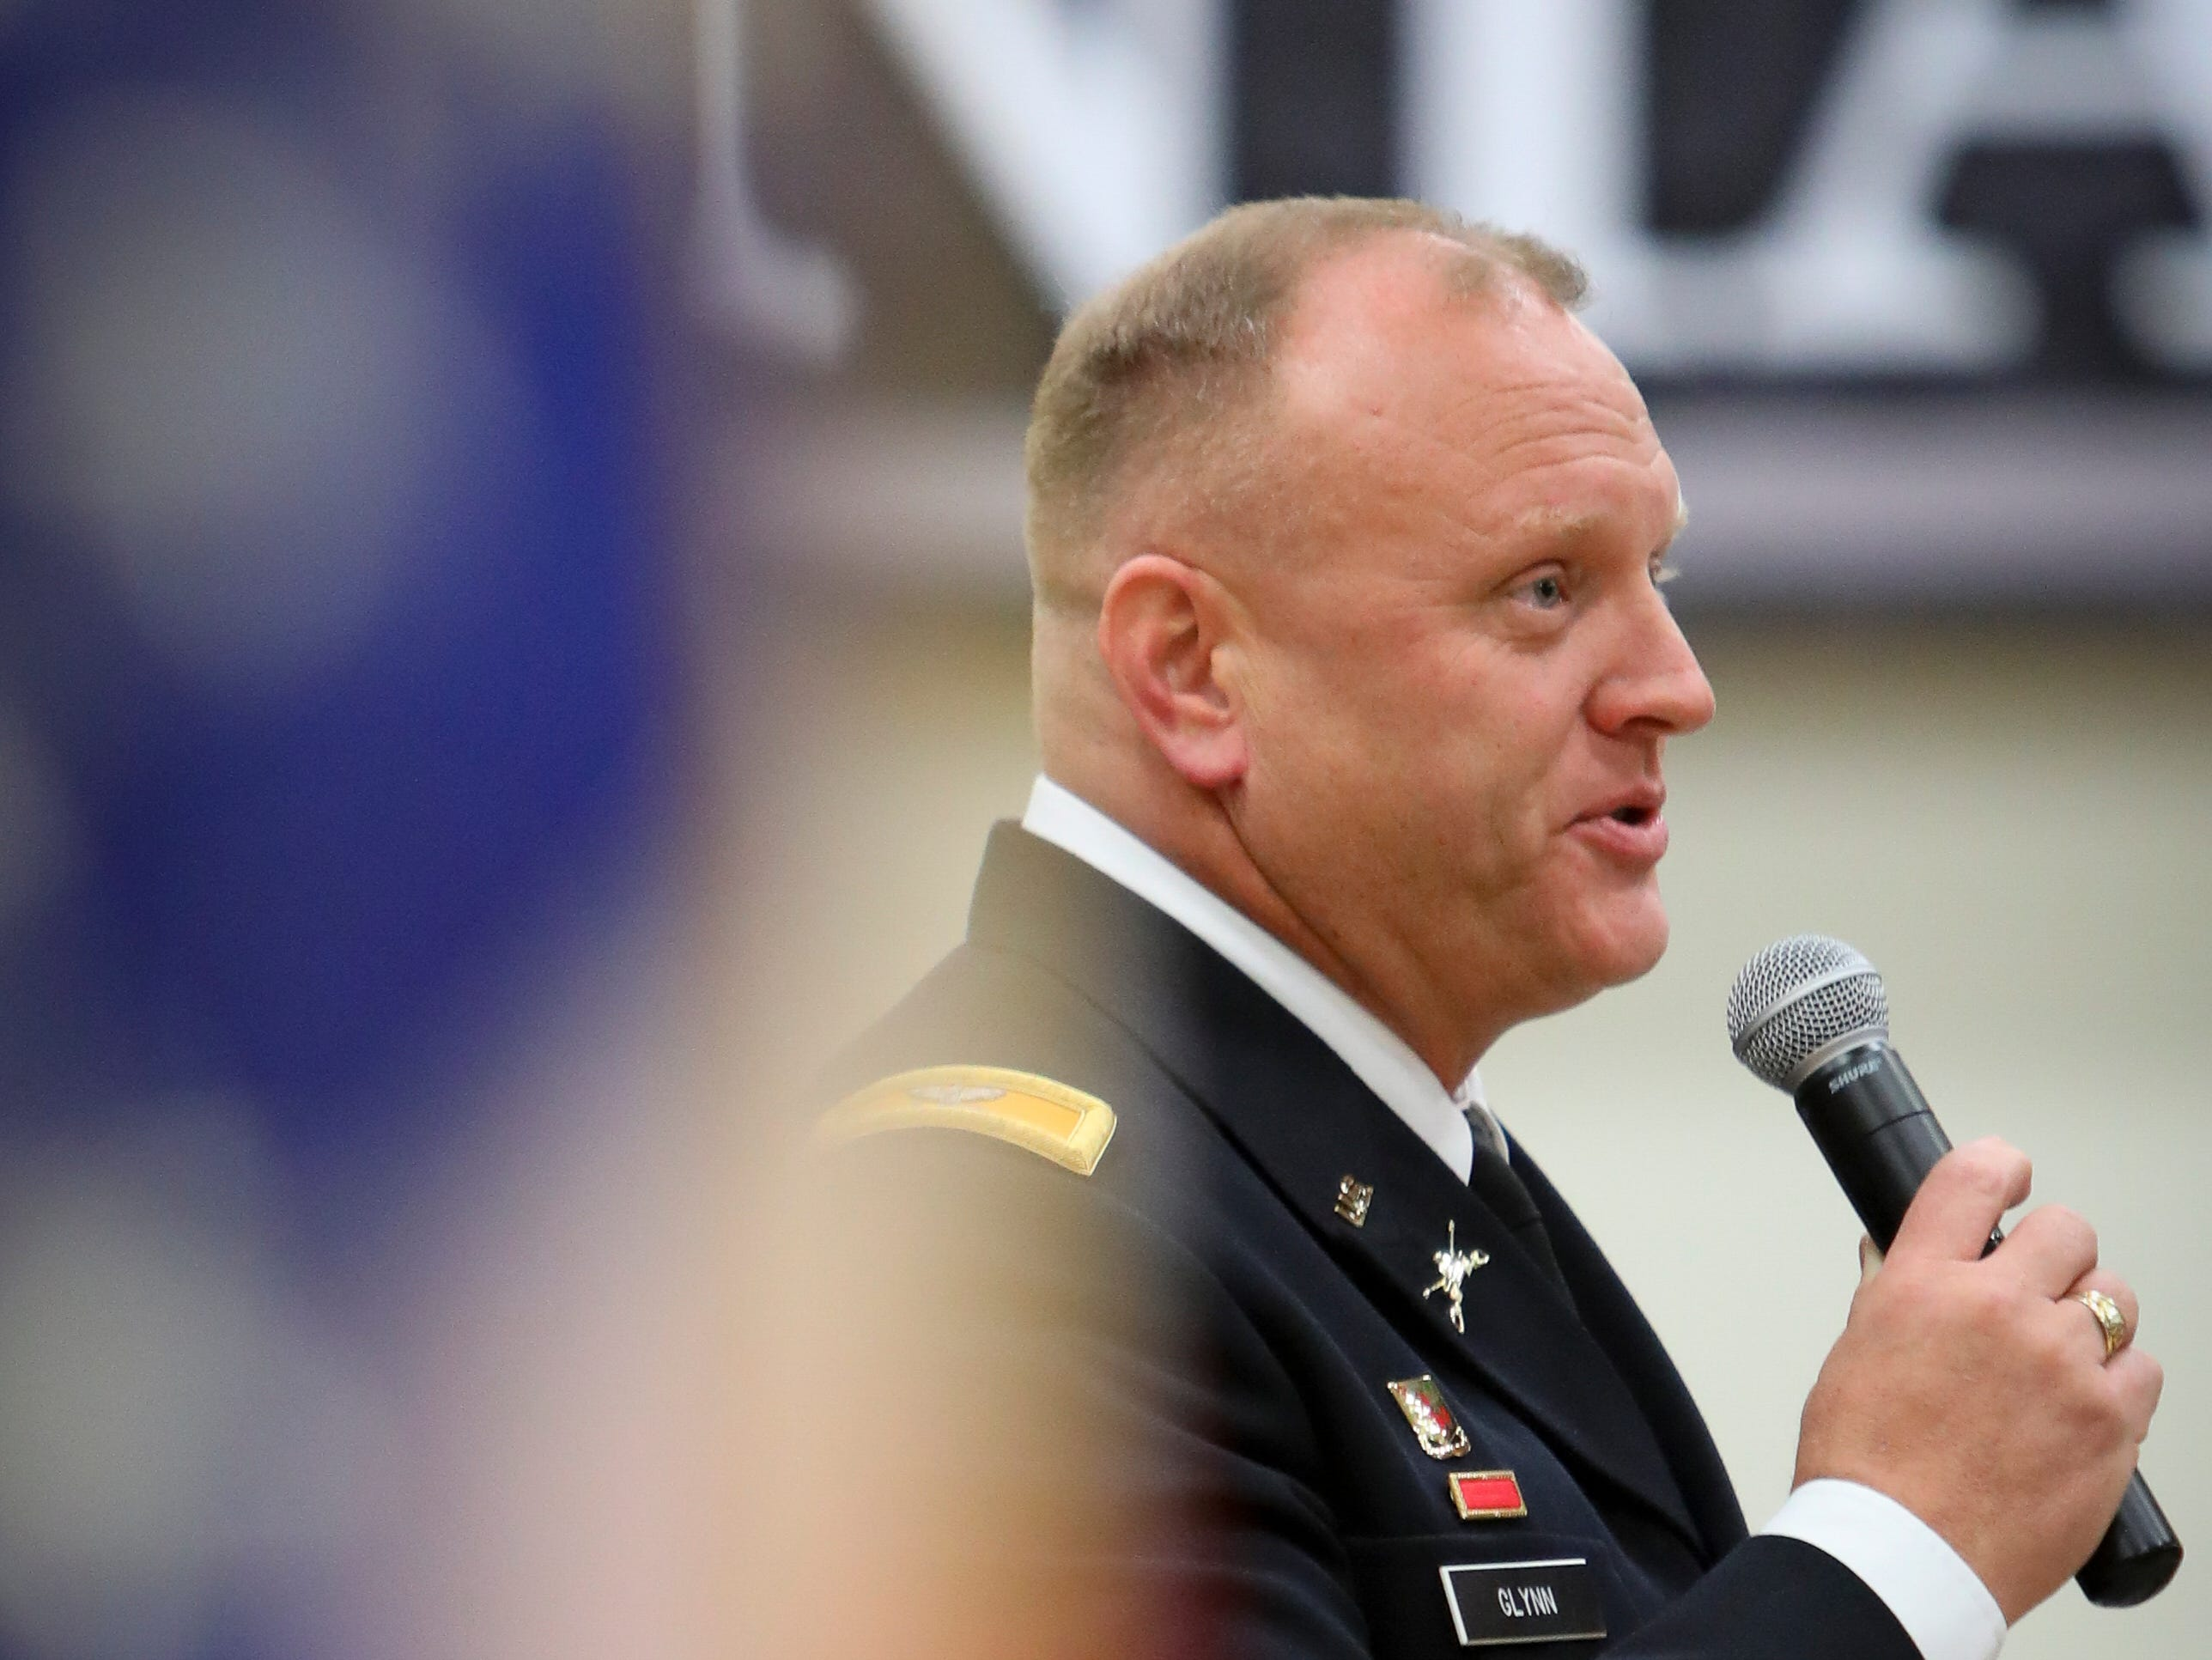 Colonel Tim Glynn, from the Army, gives a speech during a Veterans Day Breakfast at Northview Middle School on Wednesday, Nov. 14, 2018 in Ankeny, Iowa. Middle school students hosted the veterans to share their gratitude before an assembly.